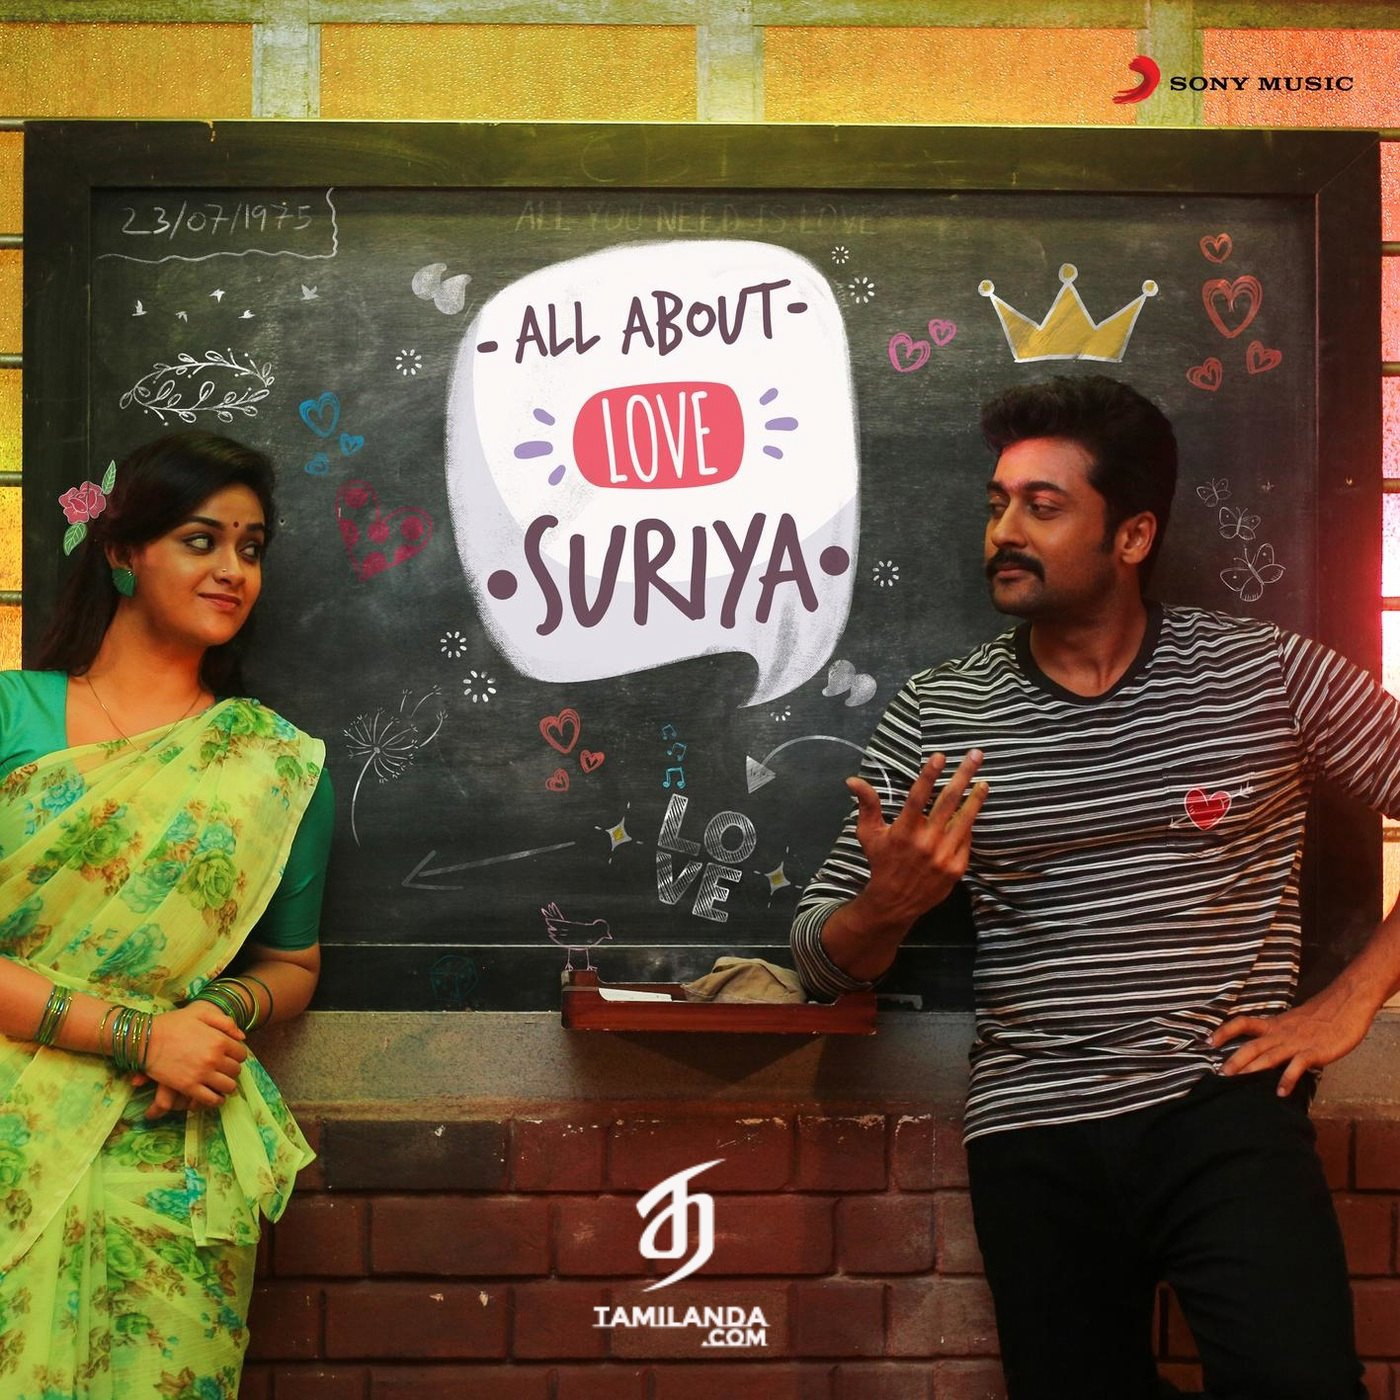 All About Love: Suriya FLAC Songs [Compilation]